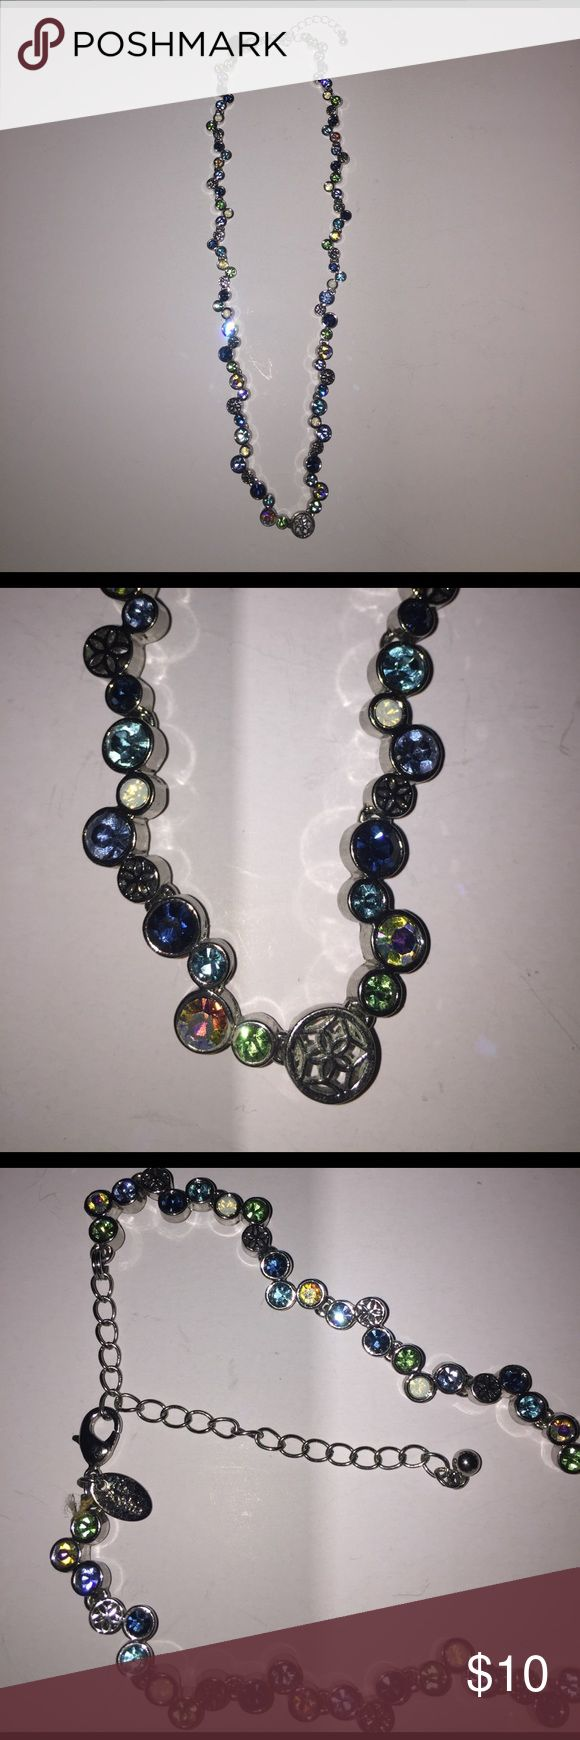 Lia Sophia necklace NWOT Never worn. Given as a gift. Beautiful piece. Just not my style. Silver with blue, aqua, green, etc stones. Lia Sophia Jewelry Necklaces